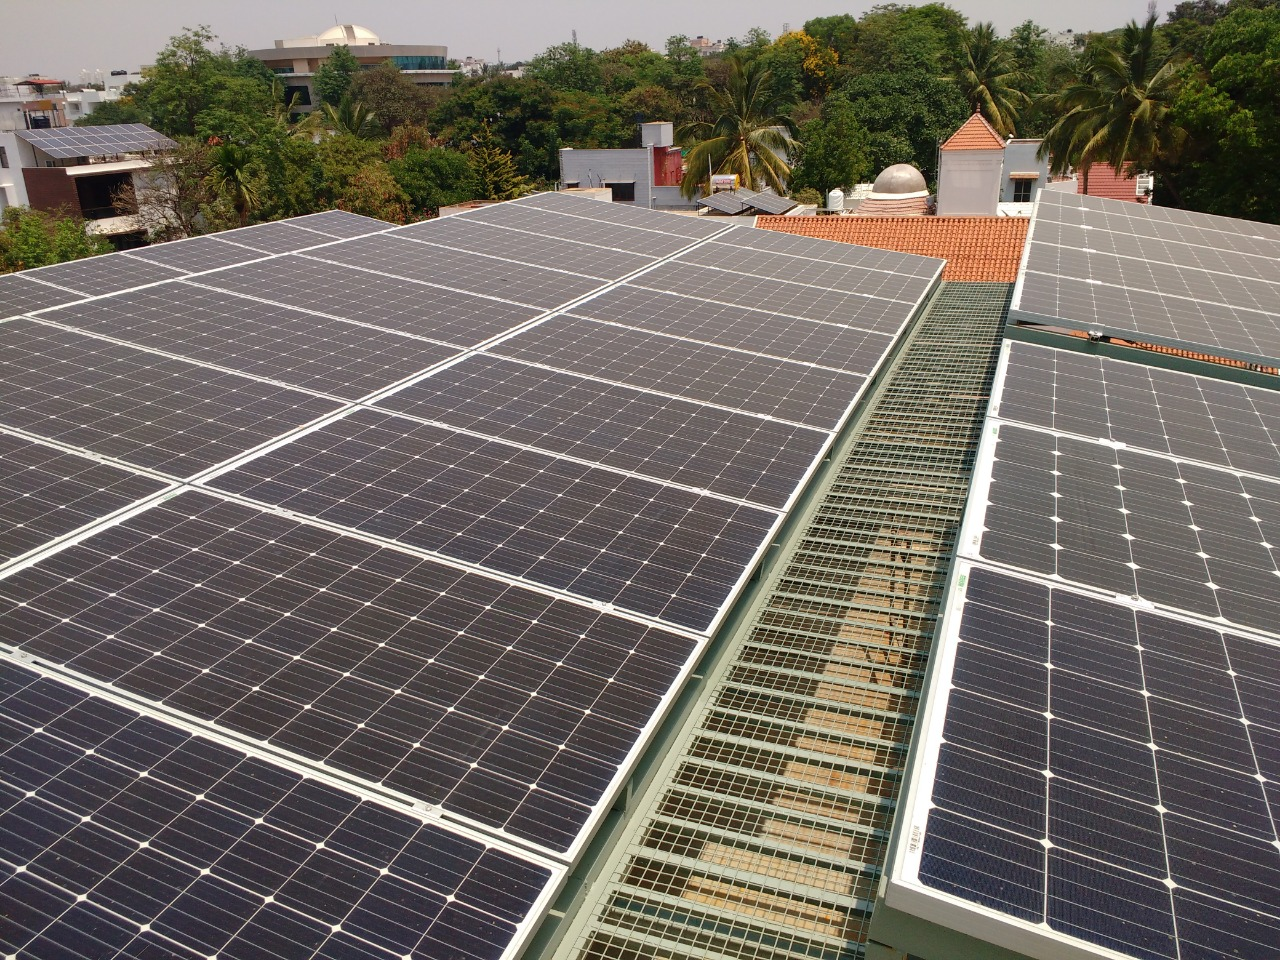 Solar Rooftop For Homes Commercial Ecosoch Panel With Corrugated Thin Film Cells On Wiring Panels In Prabhakar Reddy